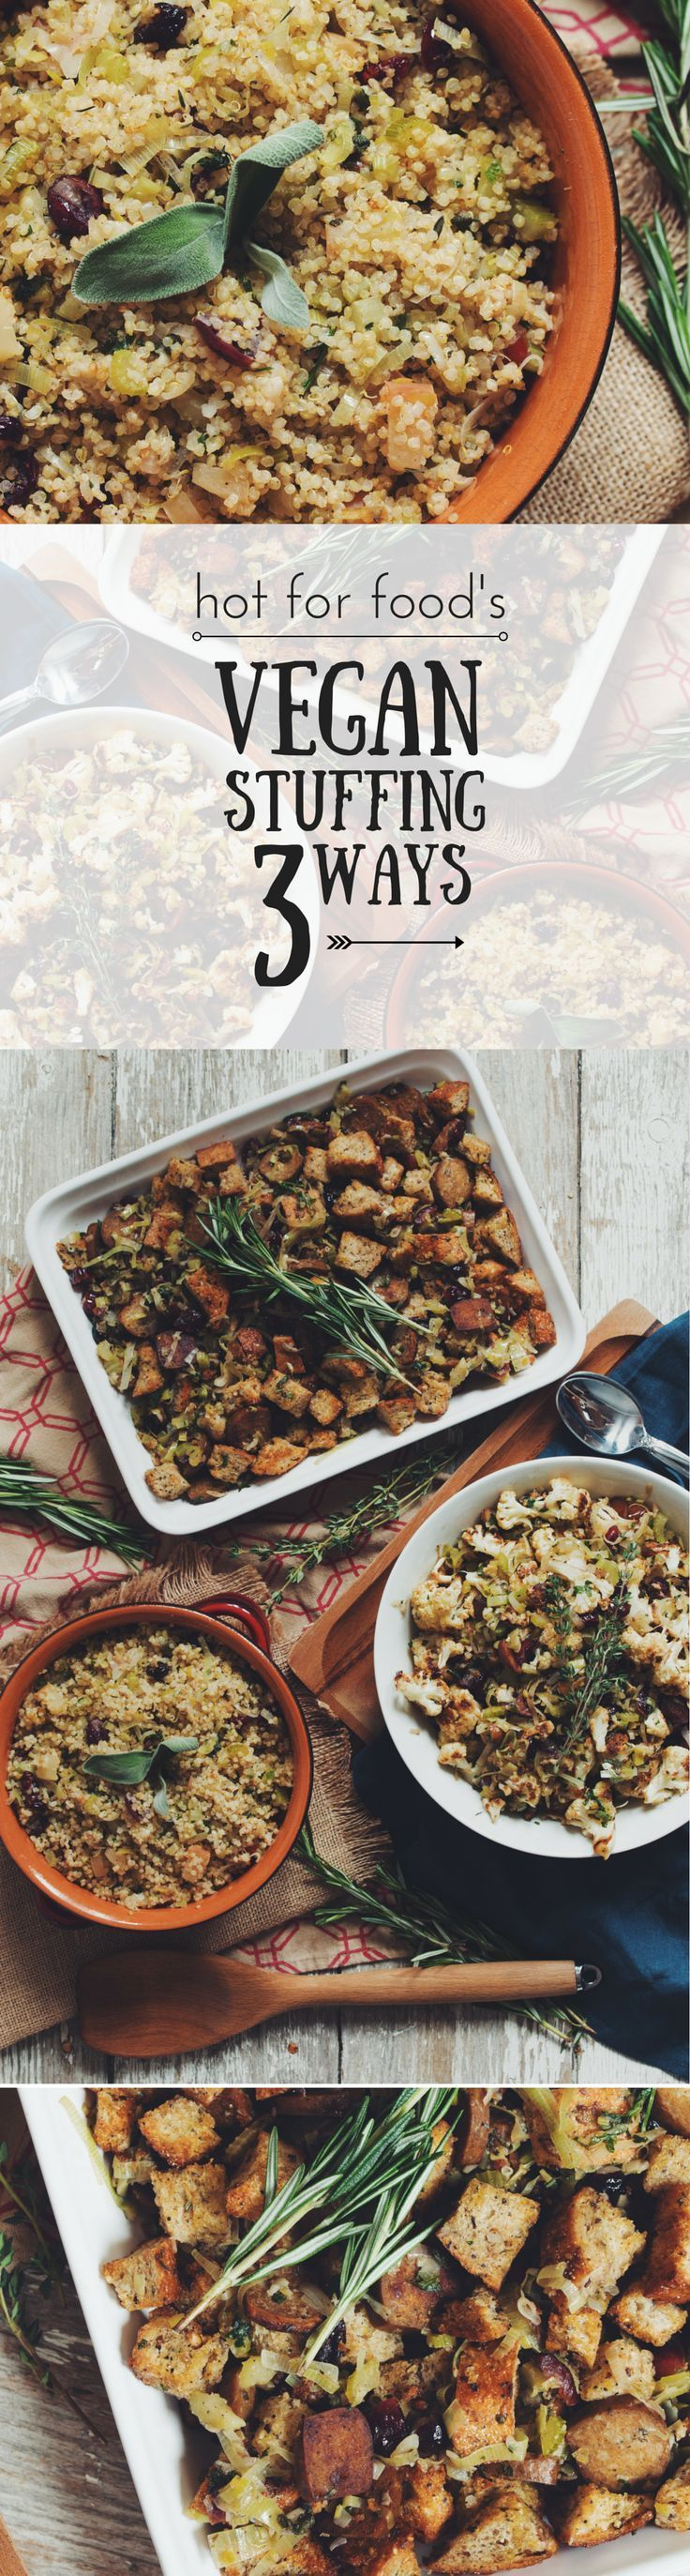 #vegan stuffing 3 ways #THANKSGIVING | RECIPE on youtube.com/hotforfoodblog